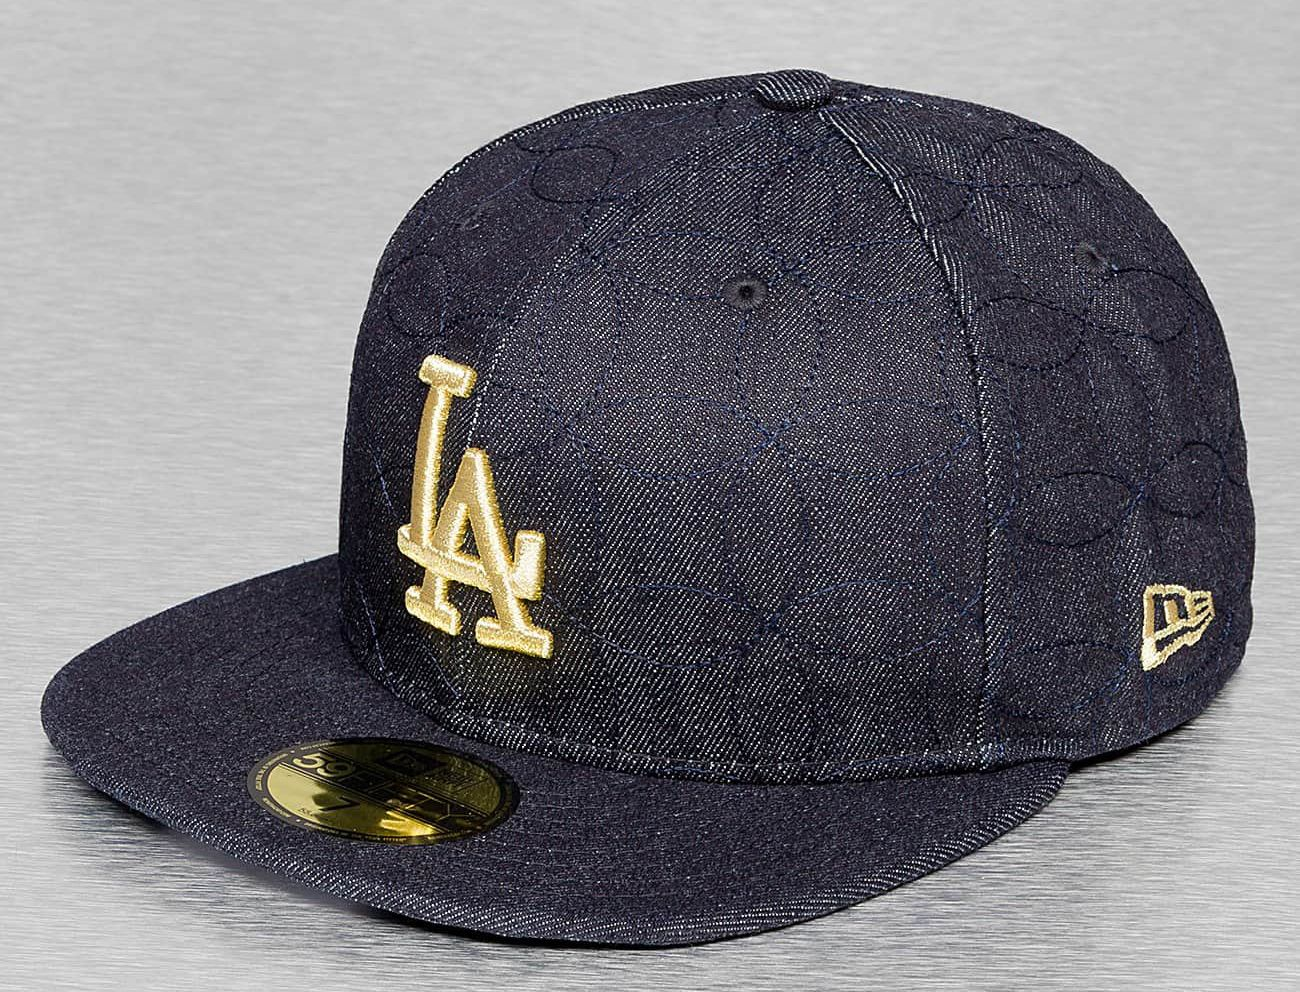 Los Angeles Dodgers Denim Quilt 59fifty Fitted Baseball Cap By New Era X Mlb Dodger Hats Denim Quilt Baseball Cap